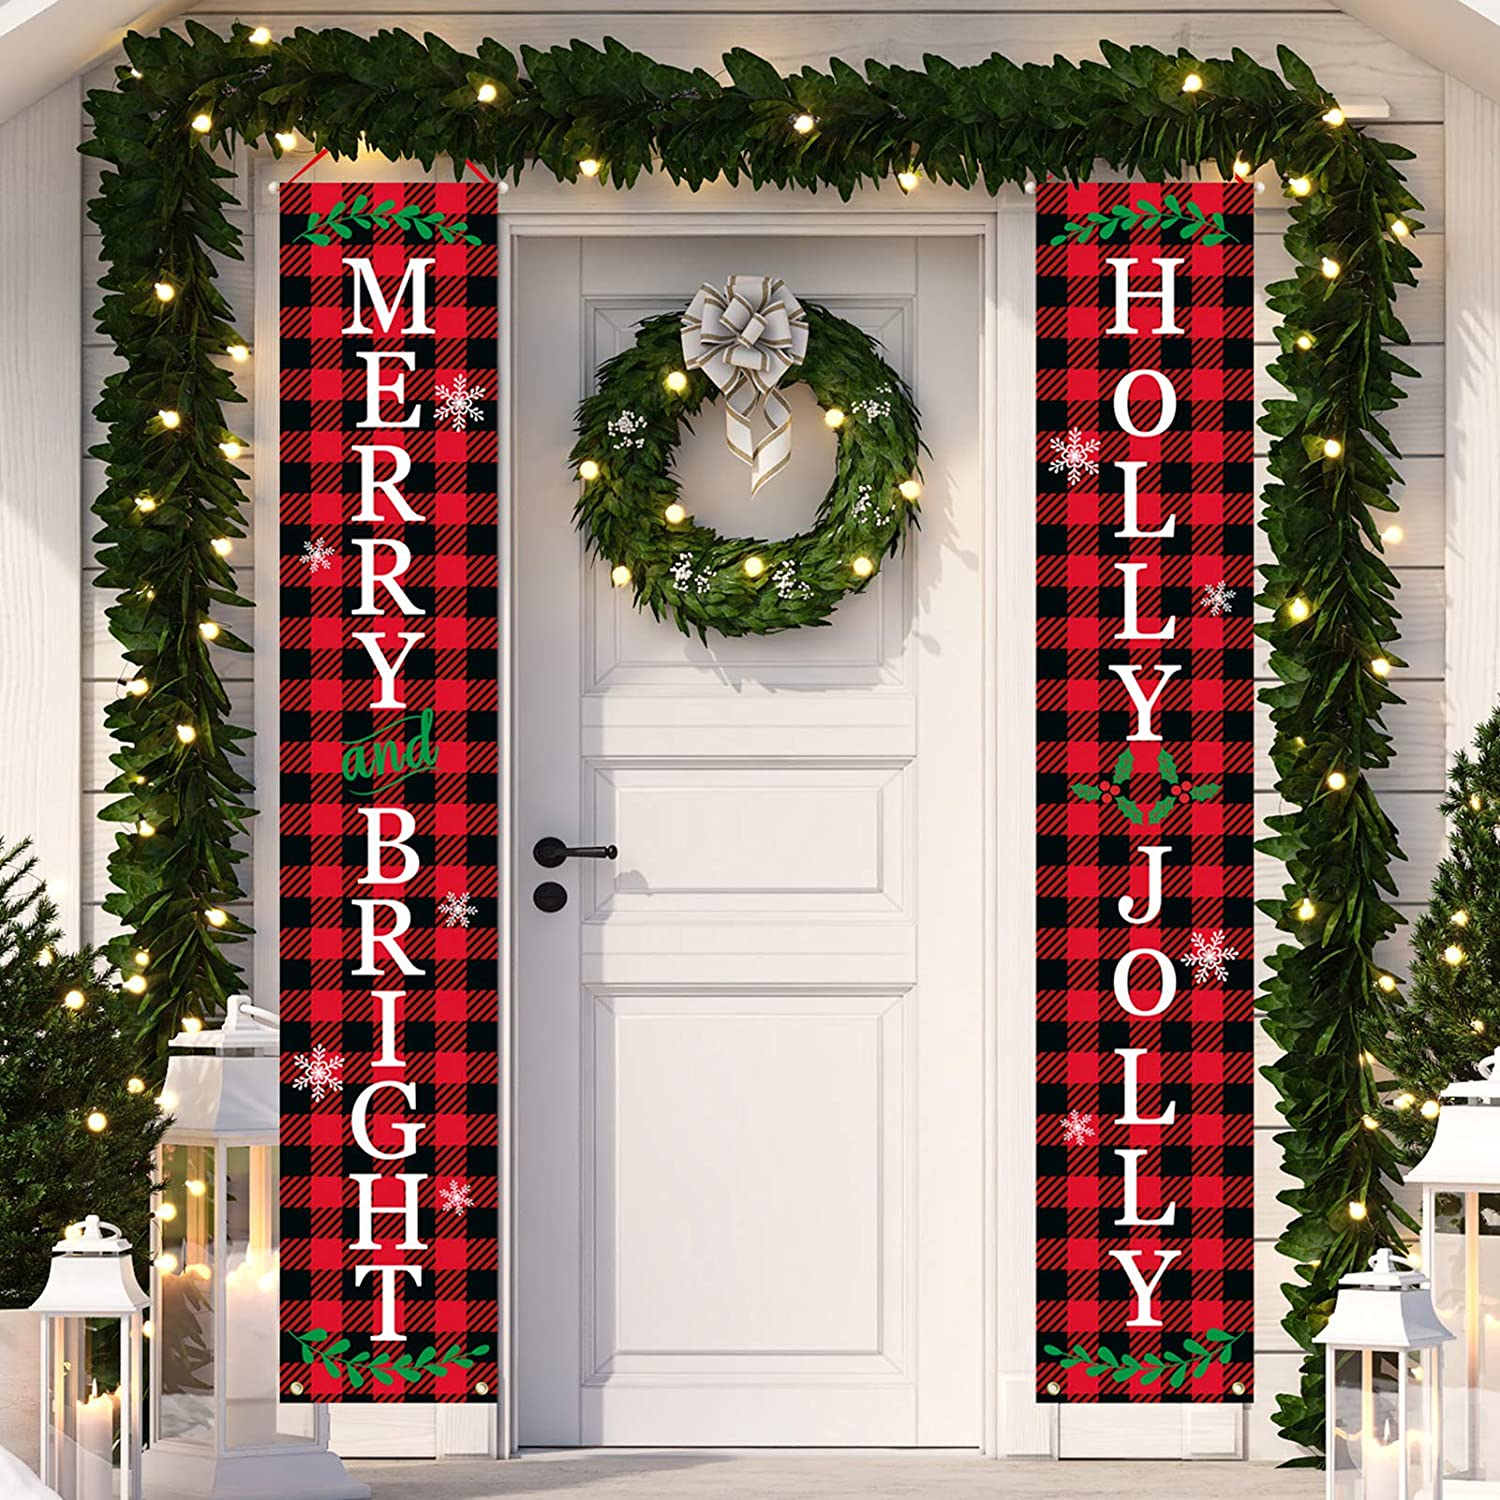 Dazonge Christmas Decorations Outdoor Indoor | Merry and Bright & Holly Jolly Christmas Porch Banners | Buffalo Plaid Xmas Door Banners | Rustic Christmas Decor for Home